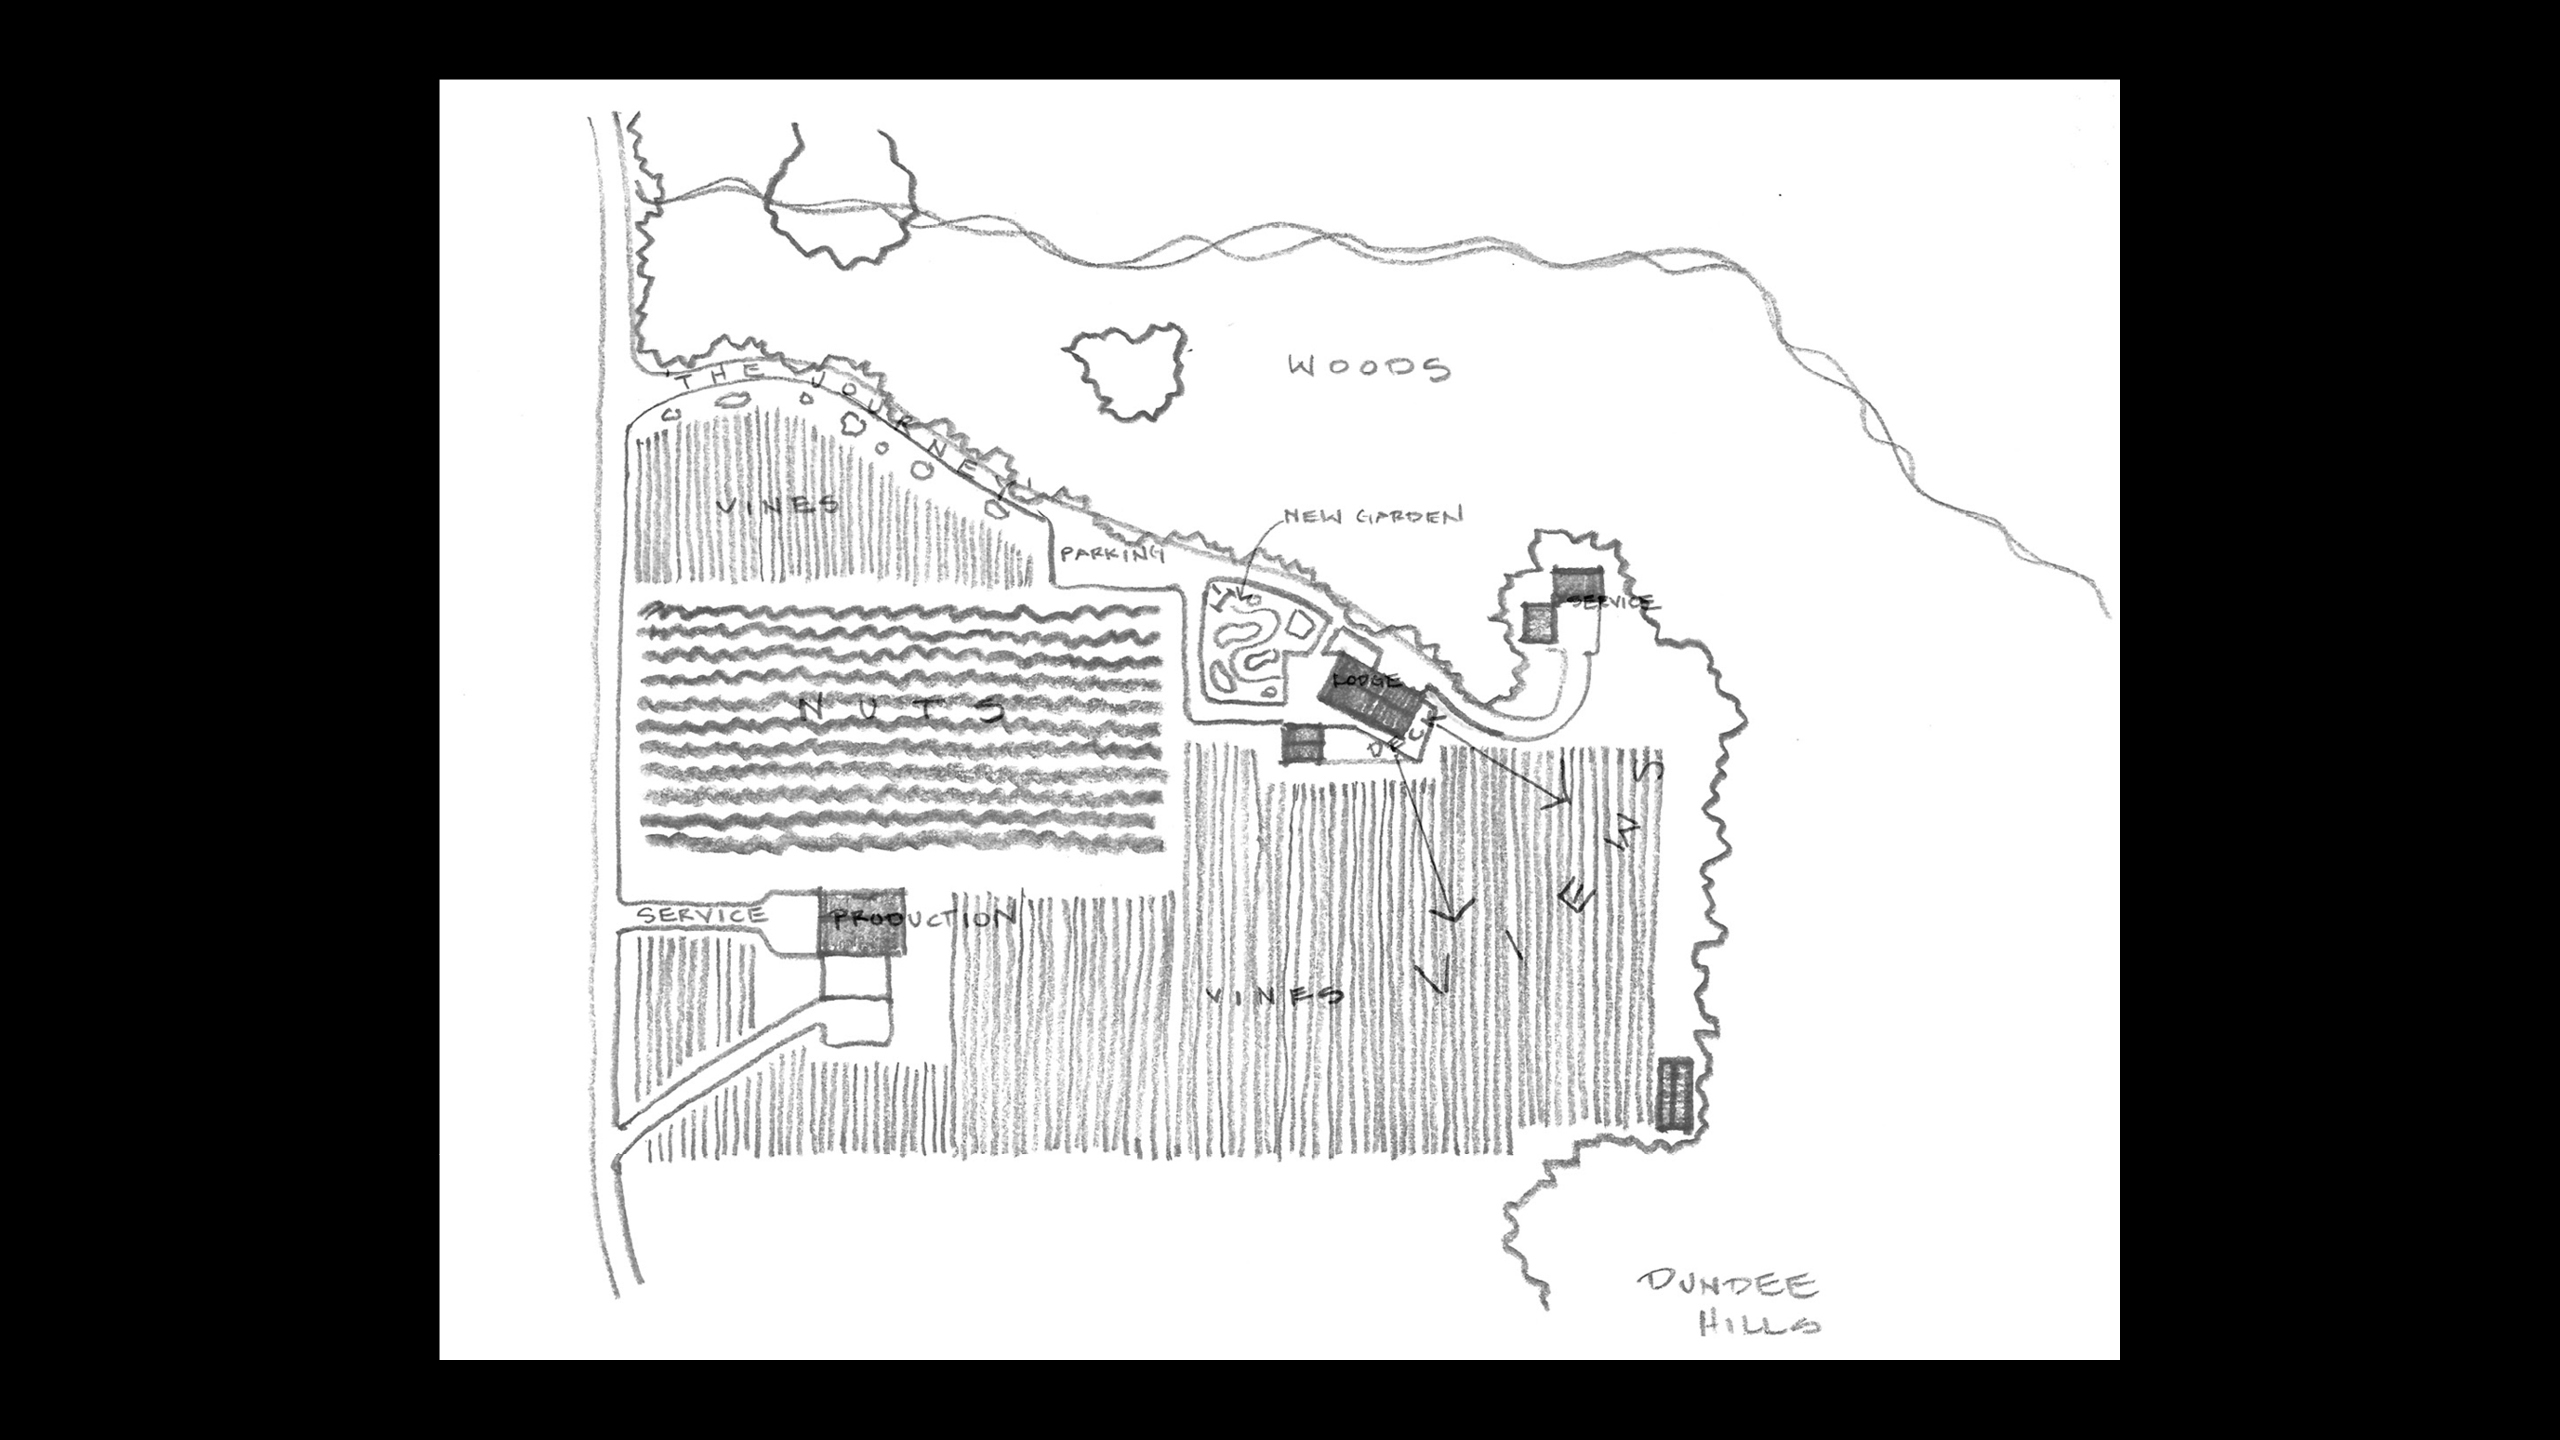 Dundee Winery Master Plan Study / image 1